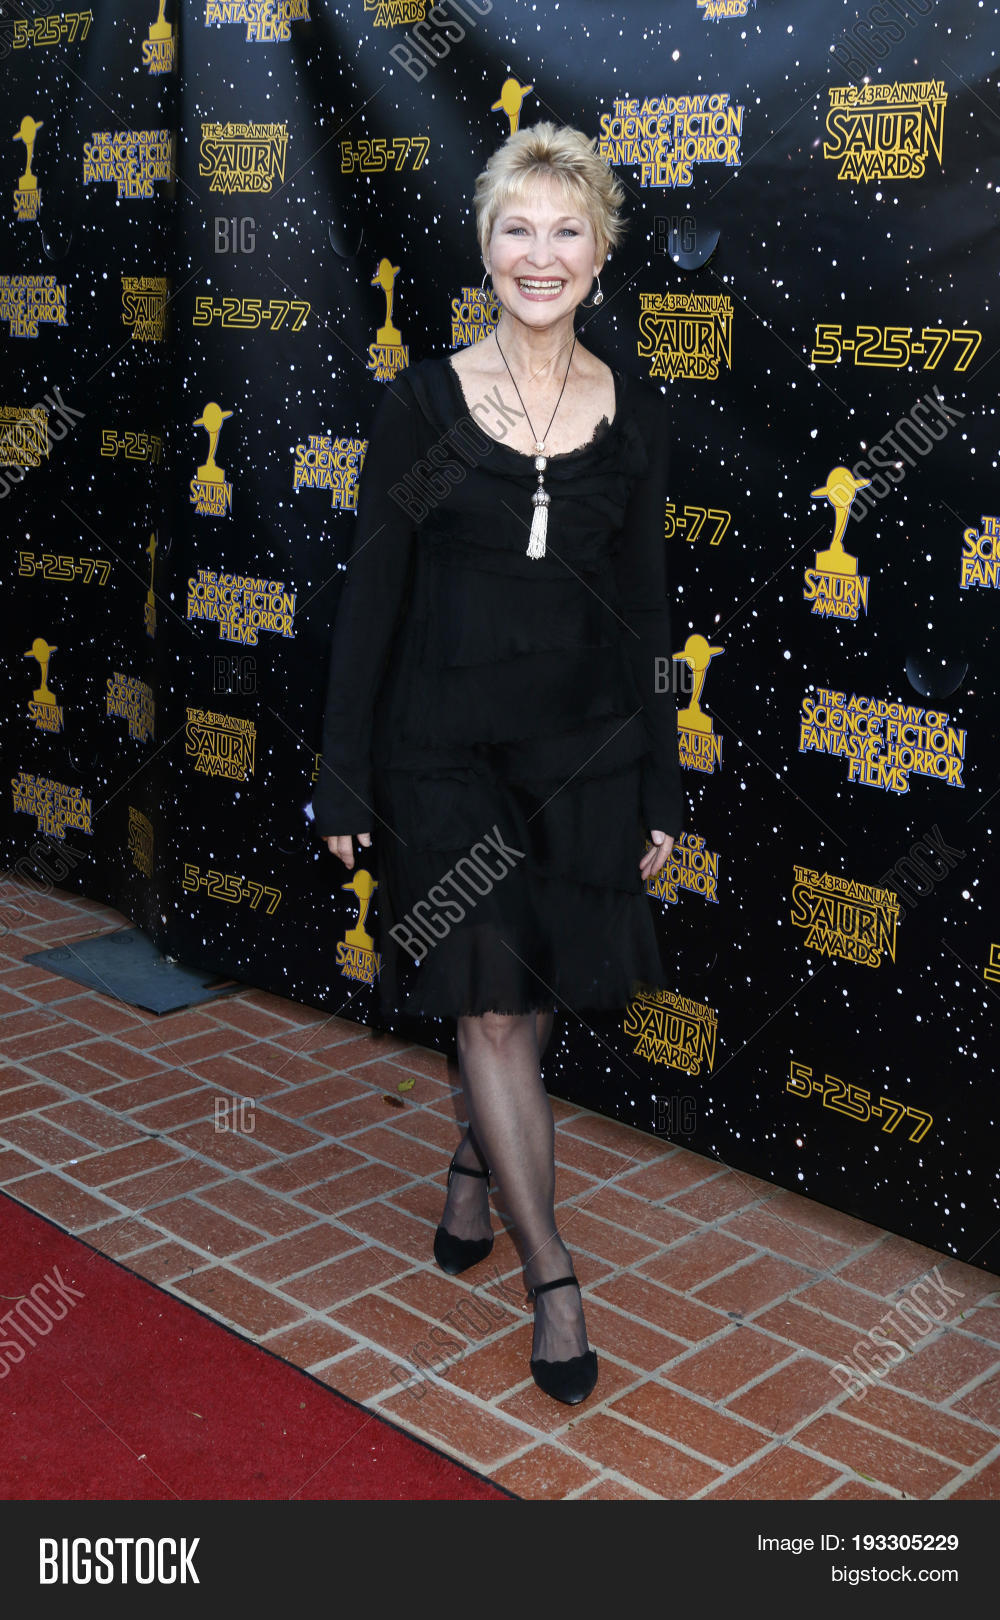 Dee wallace saturn awards in los angeles nude (93 pic)